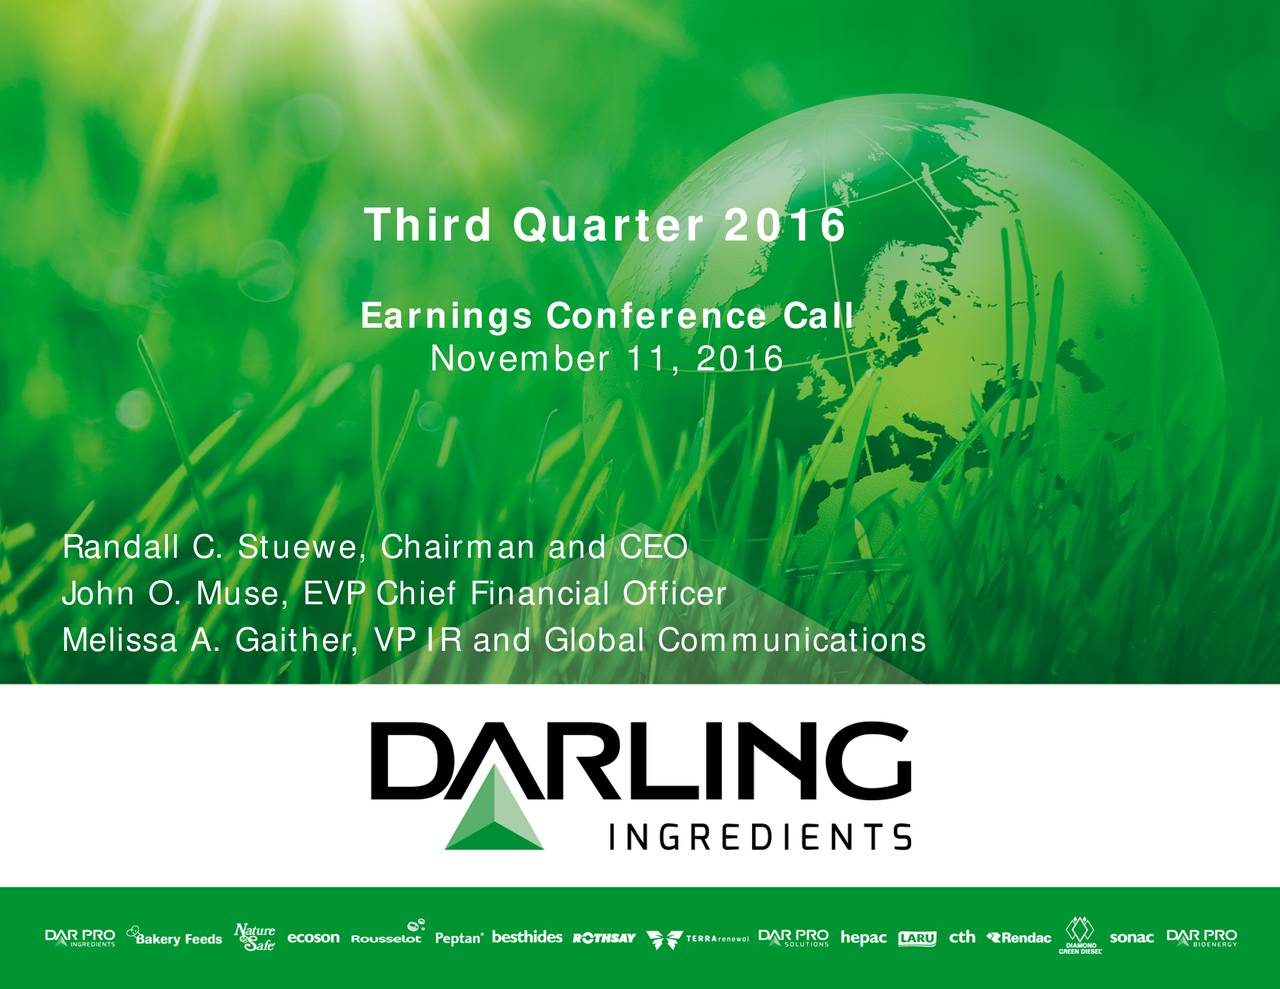 Earnings Conference Call November 11, 2016 Randall C. Stuewe, Chairman and CEO John O. Muse, EVP Chief Financial Officer Melissa A. Gaither, VP IR and Global Communications